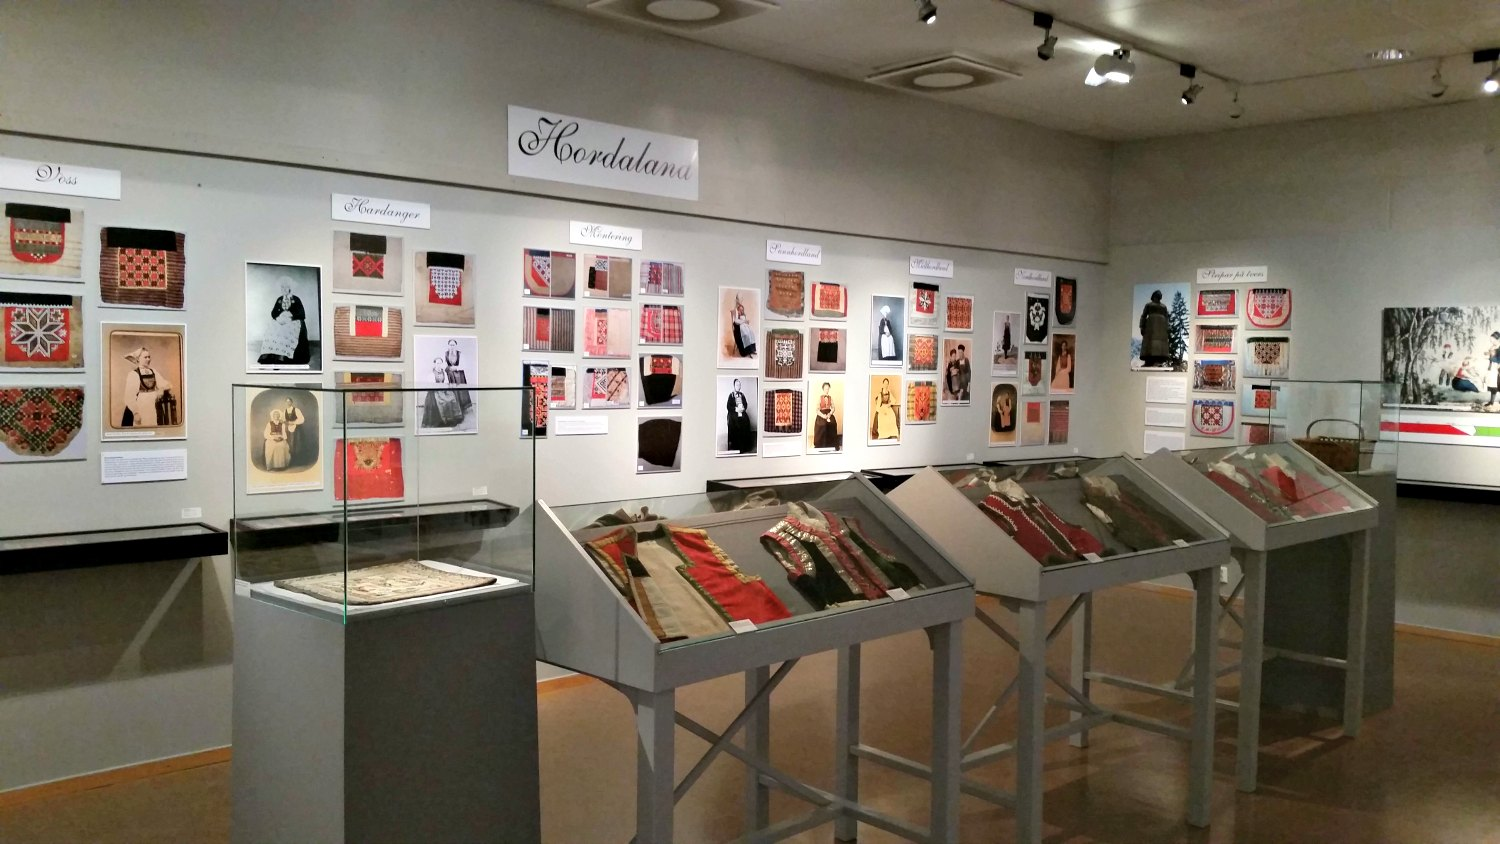 Overview of the exhibition